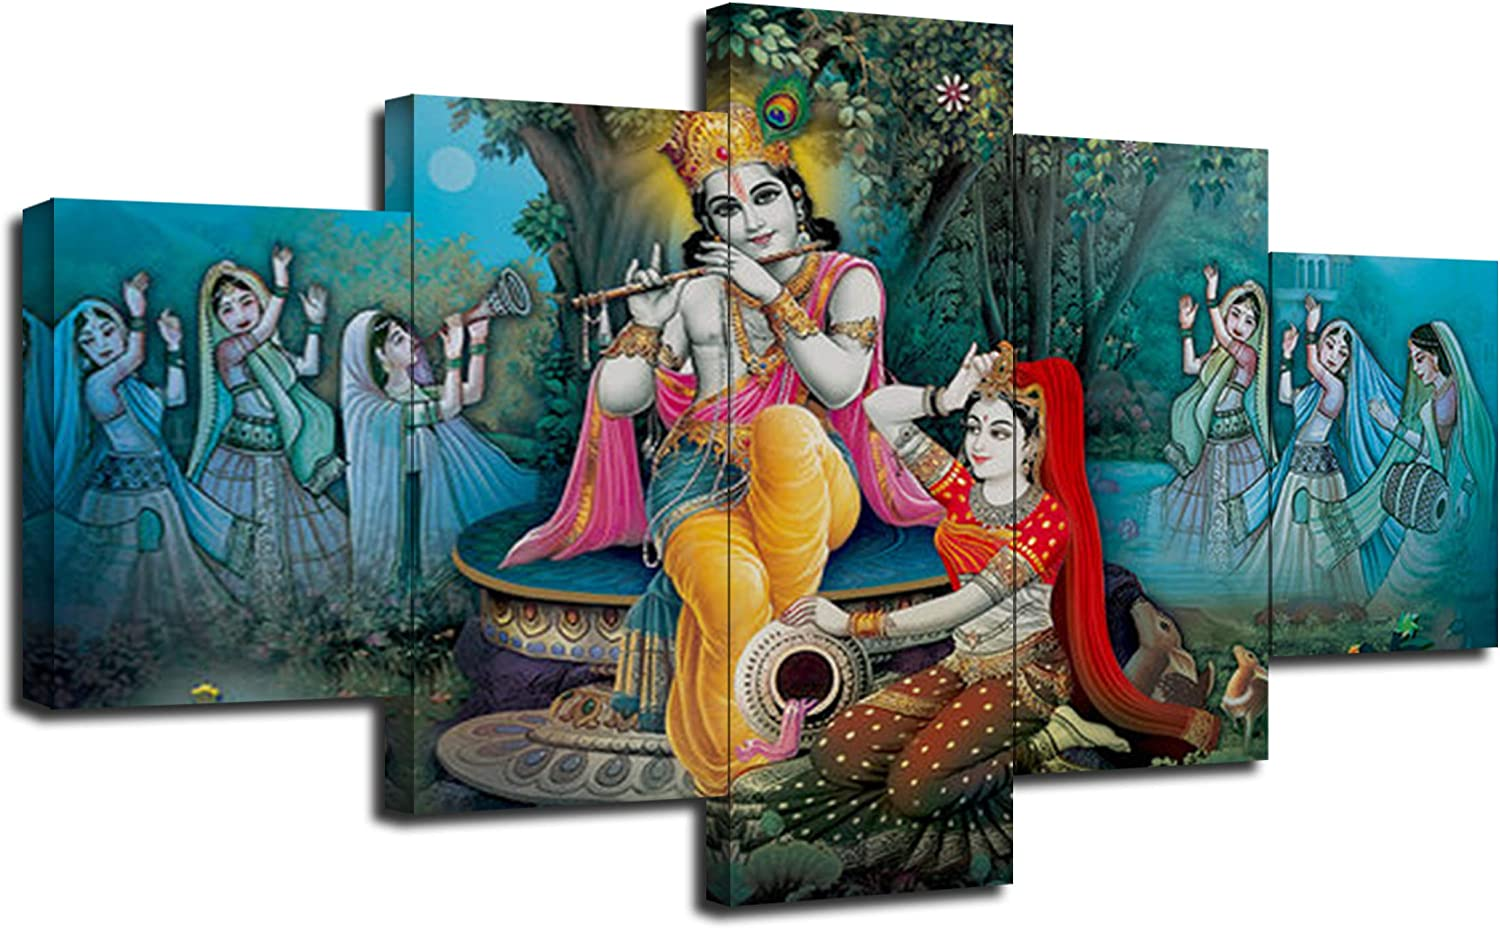 Artbrush Tower Radha Krishna Canvas Art Wall Paintings Home Decor Radha  Krishna Pictures 10 Pieces Framed Poster Wall Decoration Ready to ...